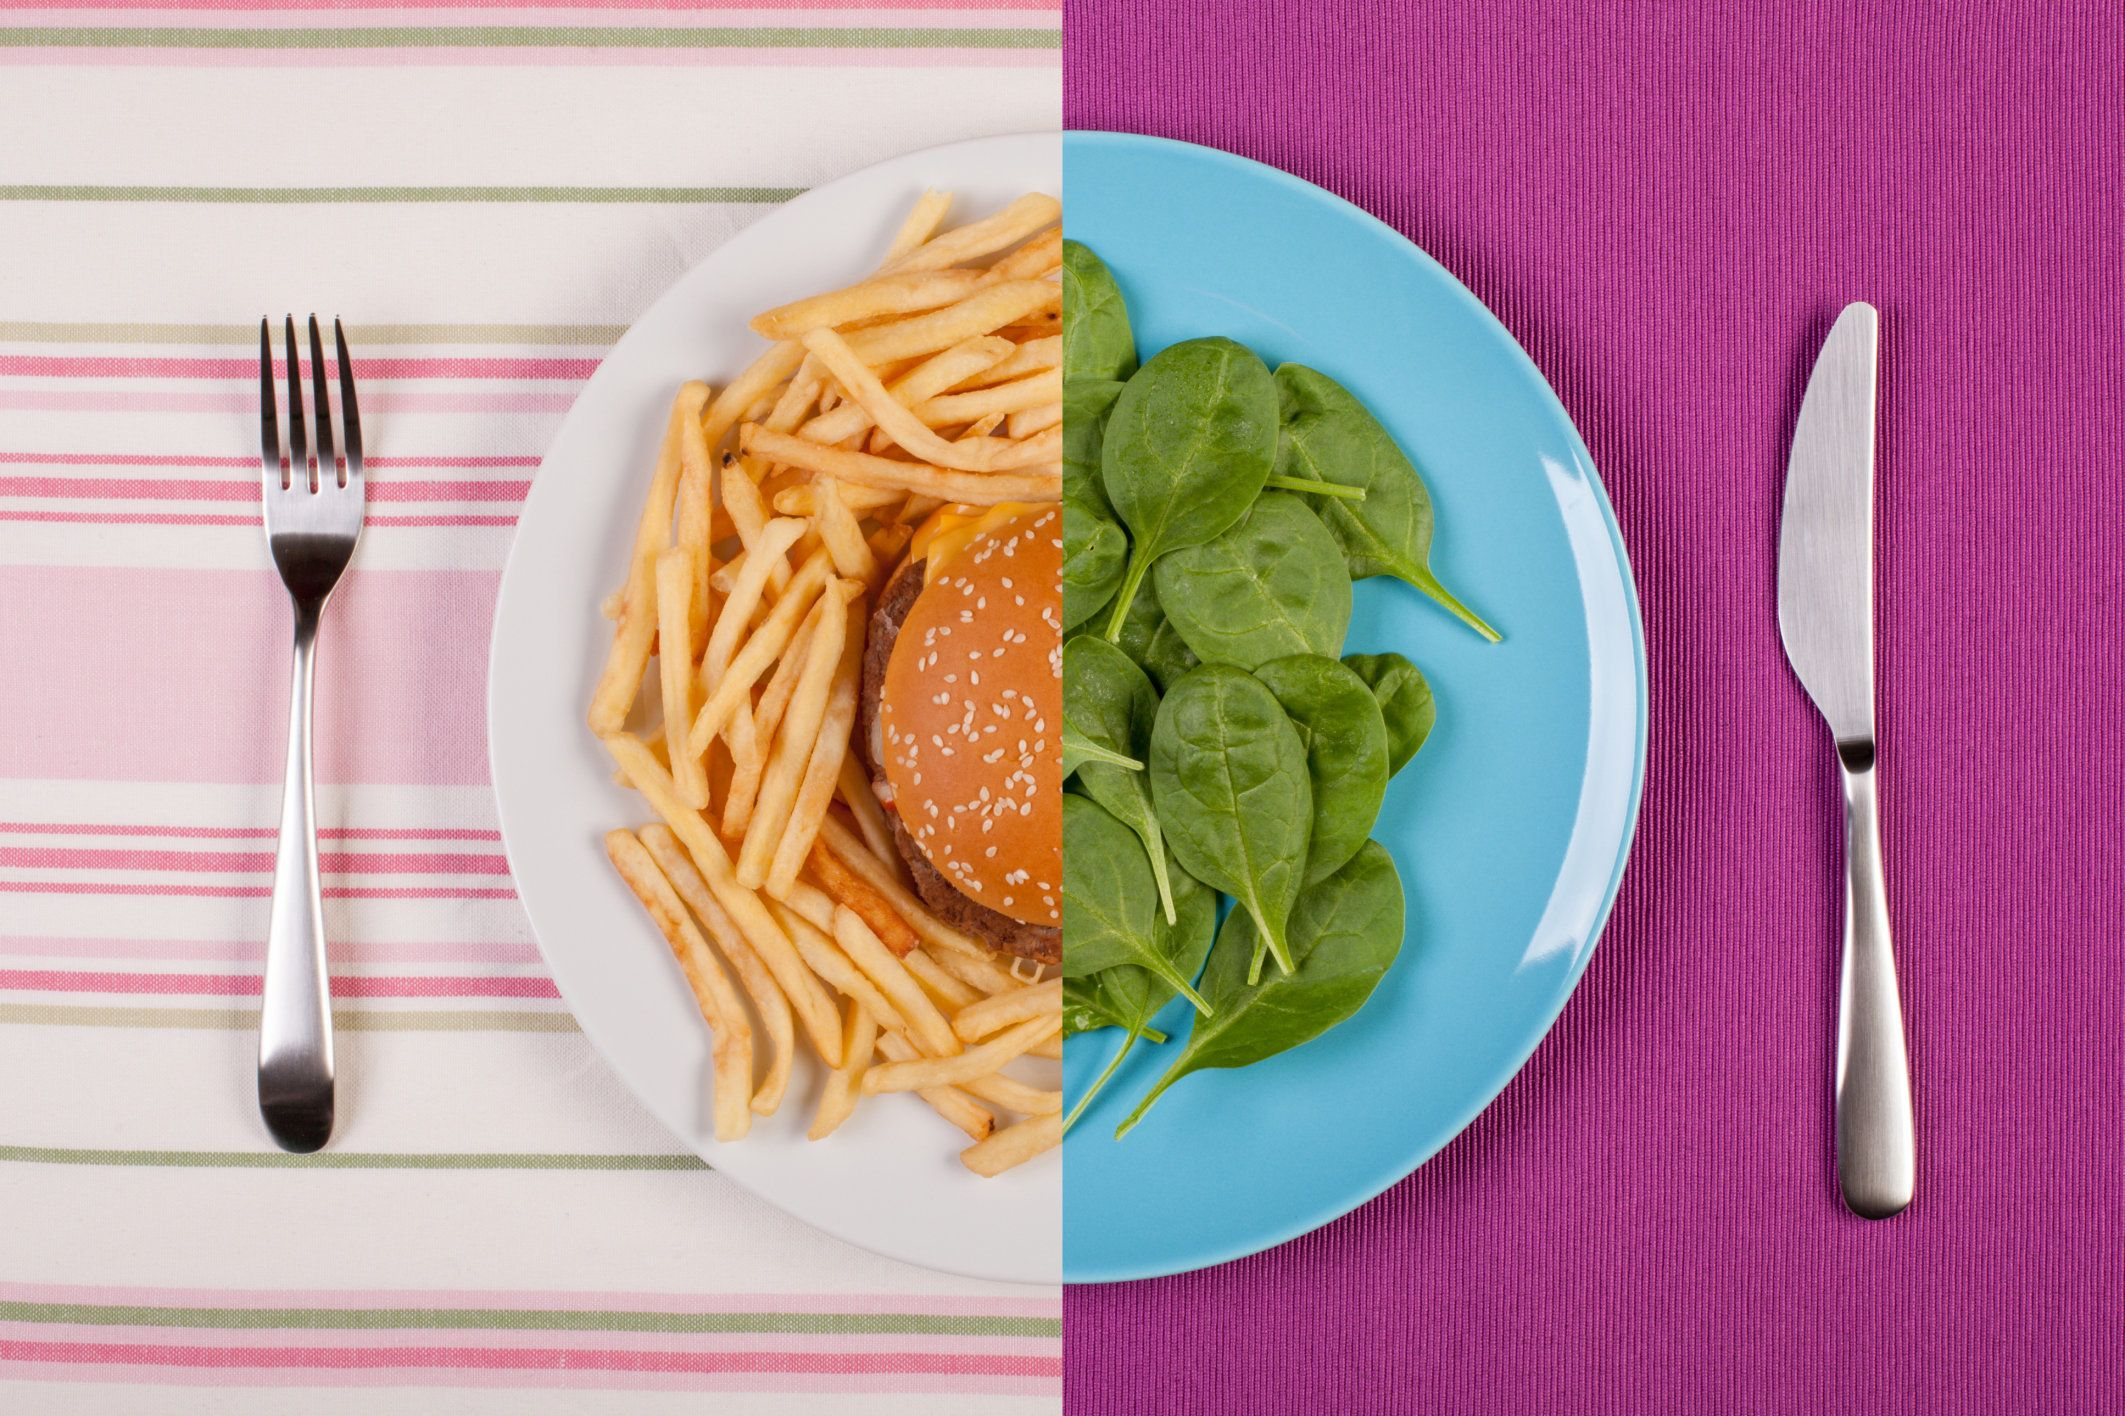 Fasting Diets No Better Than Traditional 'Healthy Eating' For Weight